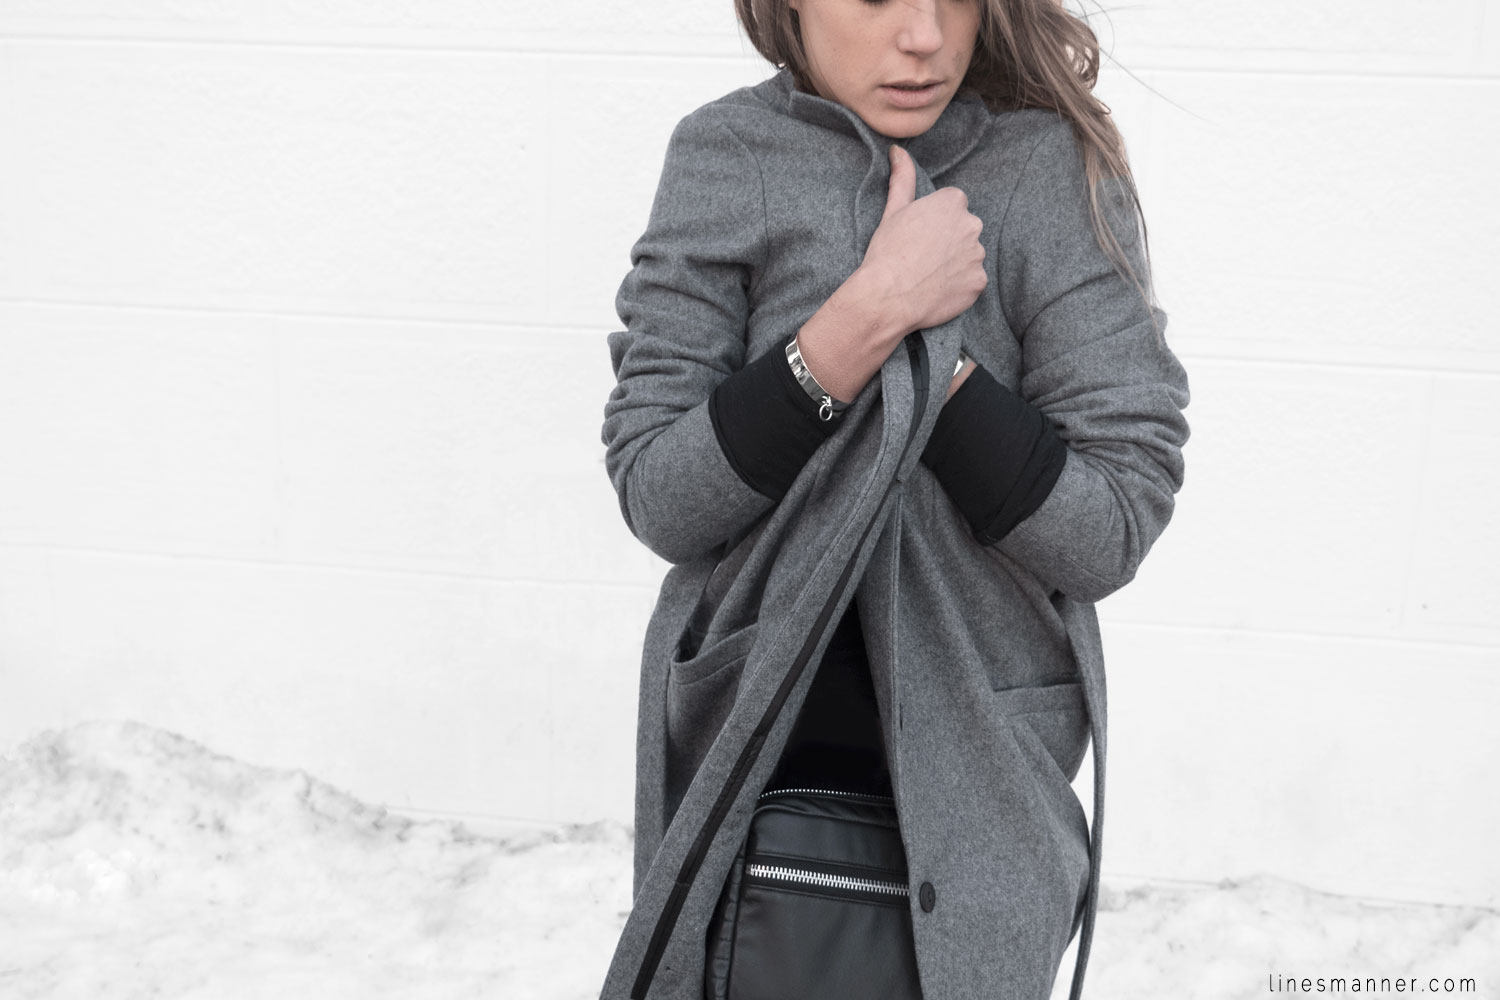 Lines-Manner-Simplicity-Neutral-Palette-Functional-Versatile-Timeless-Grey-Winter_Coat-Details-Essentials-Minimal-Basics-6